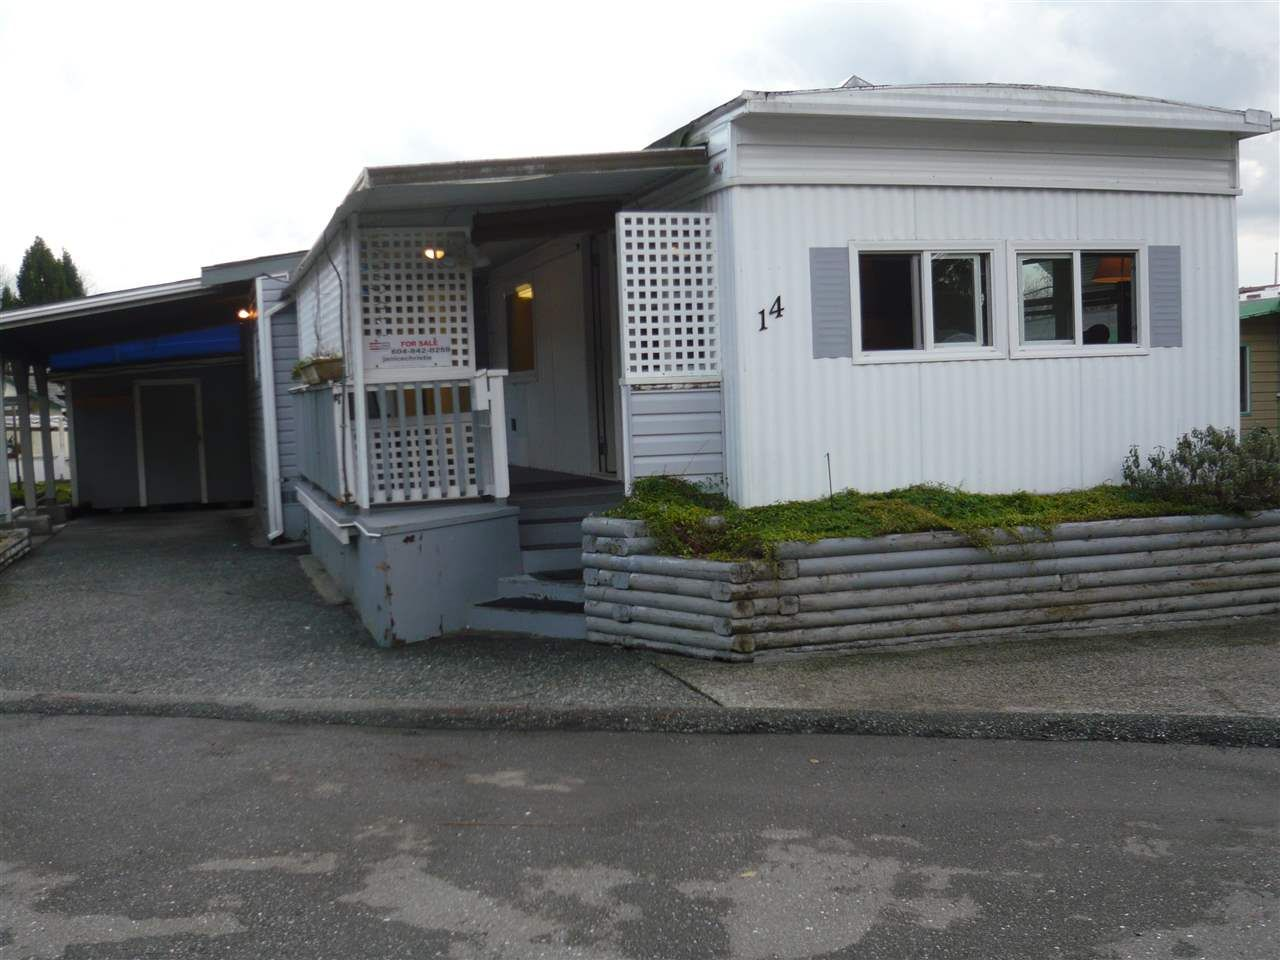 Main Photo: 14 201 CAYER STREET in Coquitlam: Maillardville Manufactured Home for sale : MLS®# R2033187